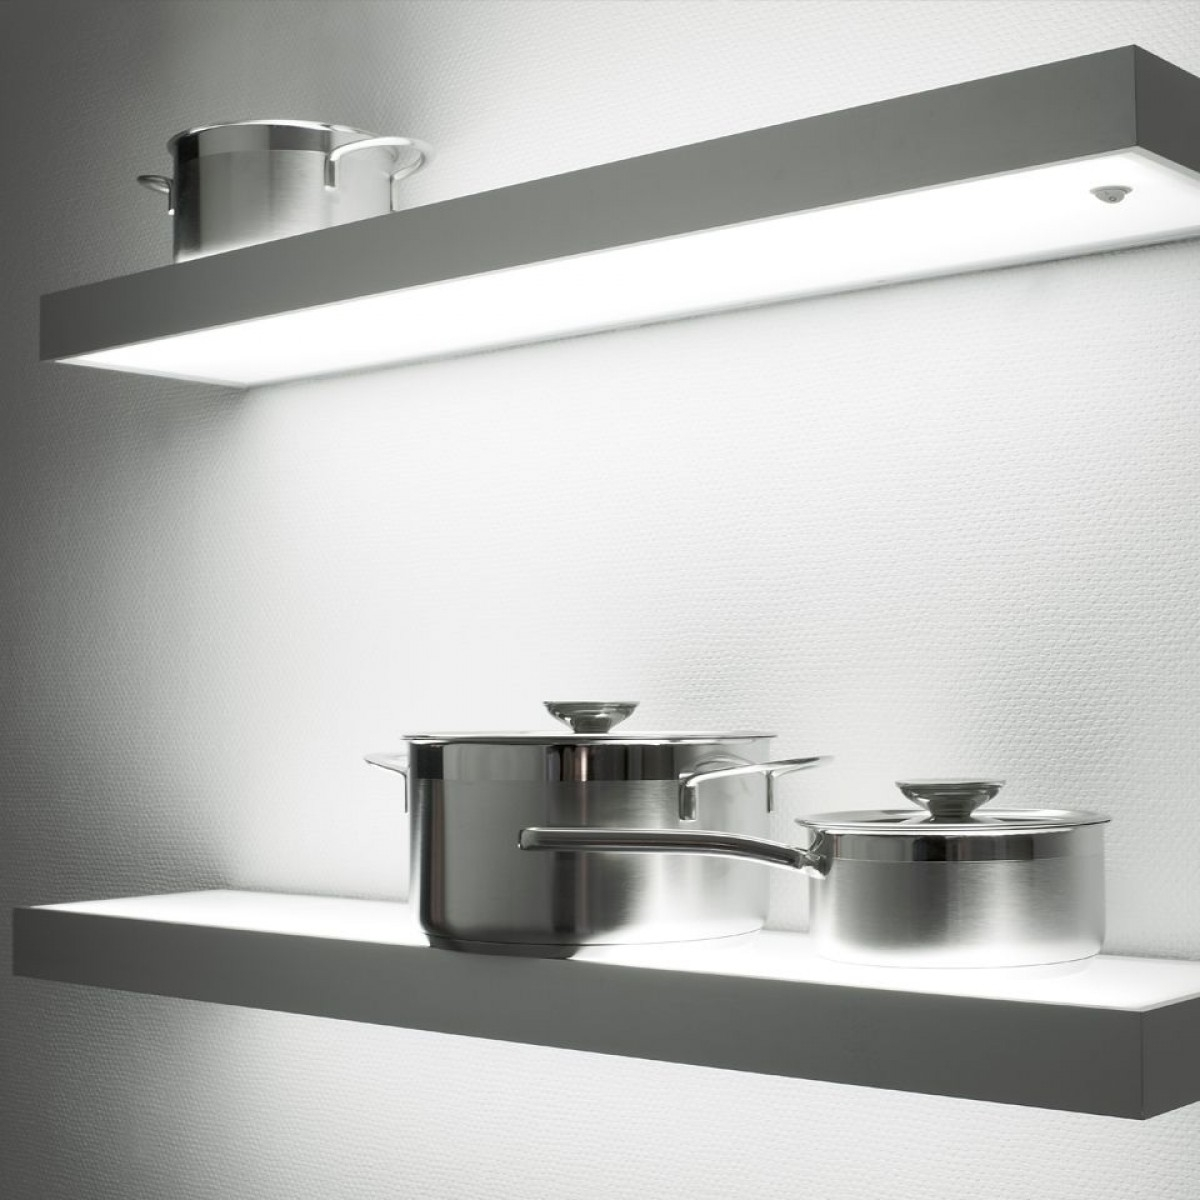 Illuminated Led Glass Box Shelf Shelf Lighting Kitchen With Regard To Illuminated Glass Shelves (Image 6 of 15)